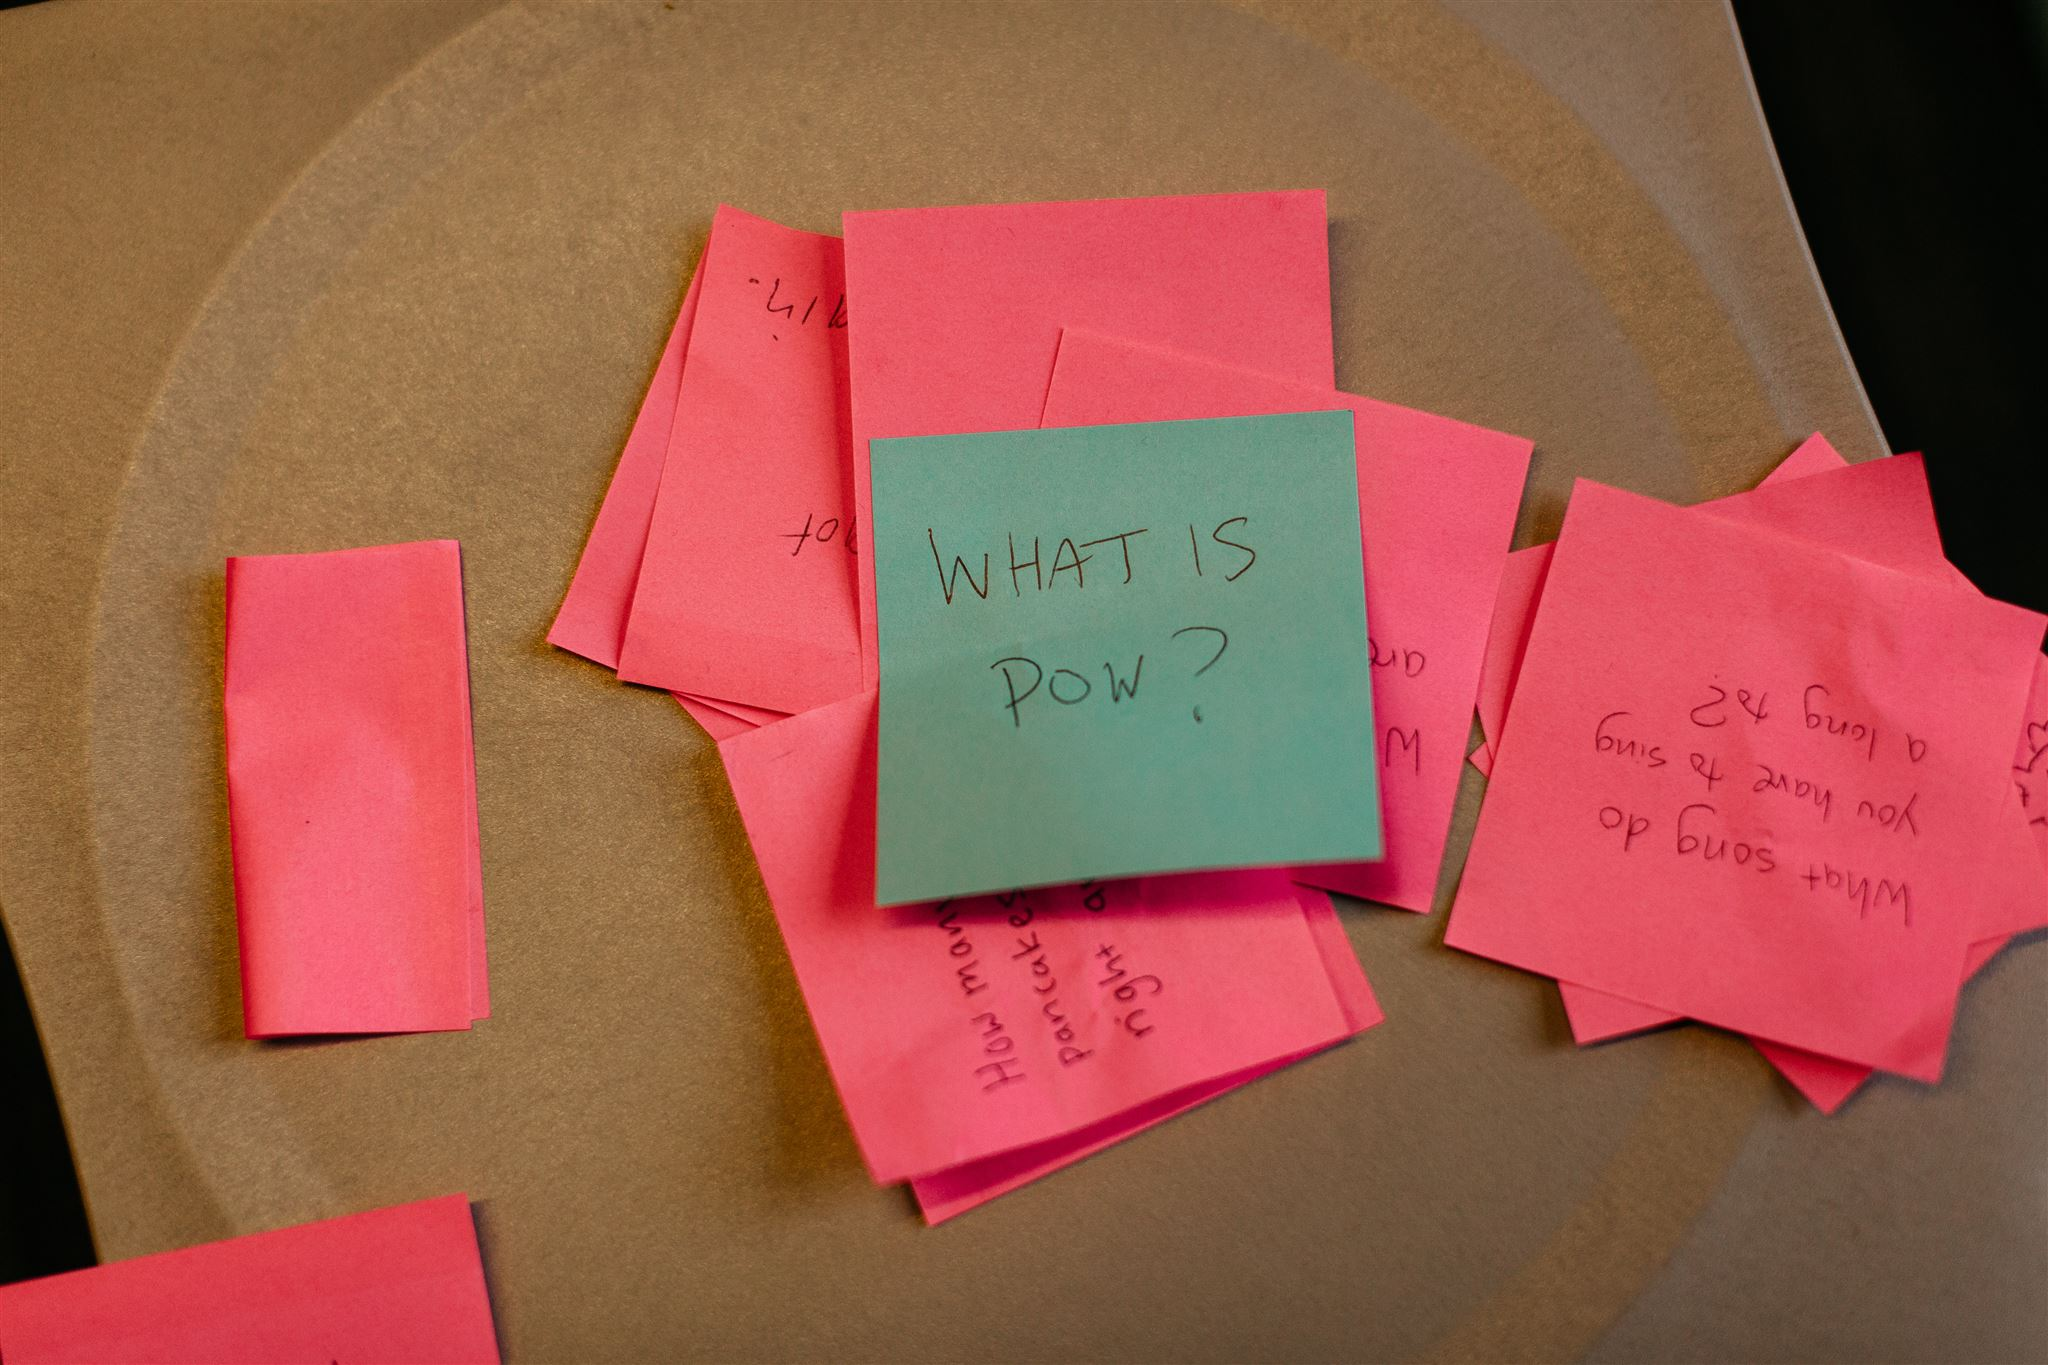 question_post-its.jpg